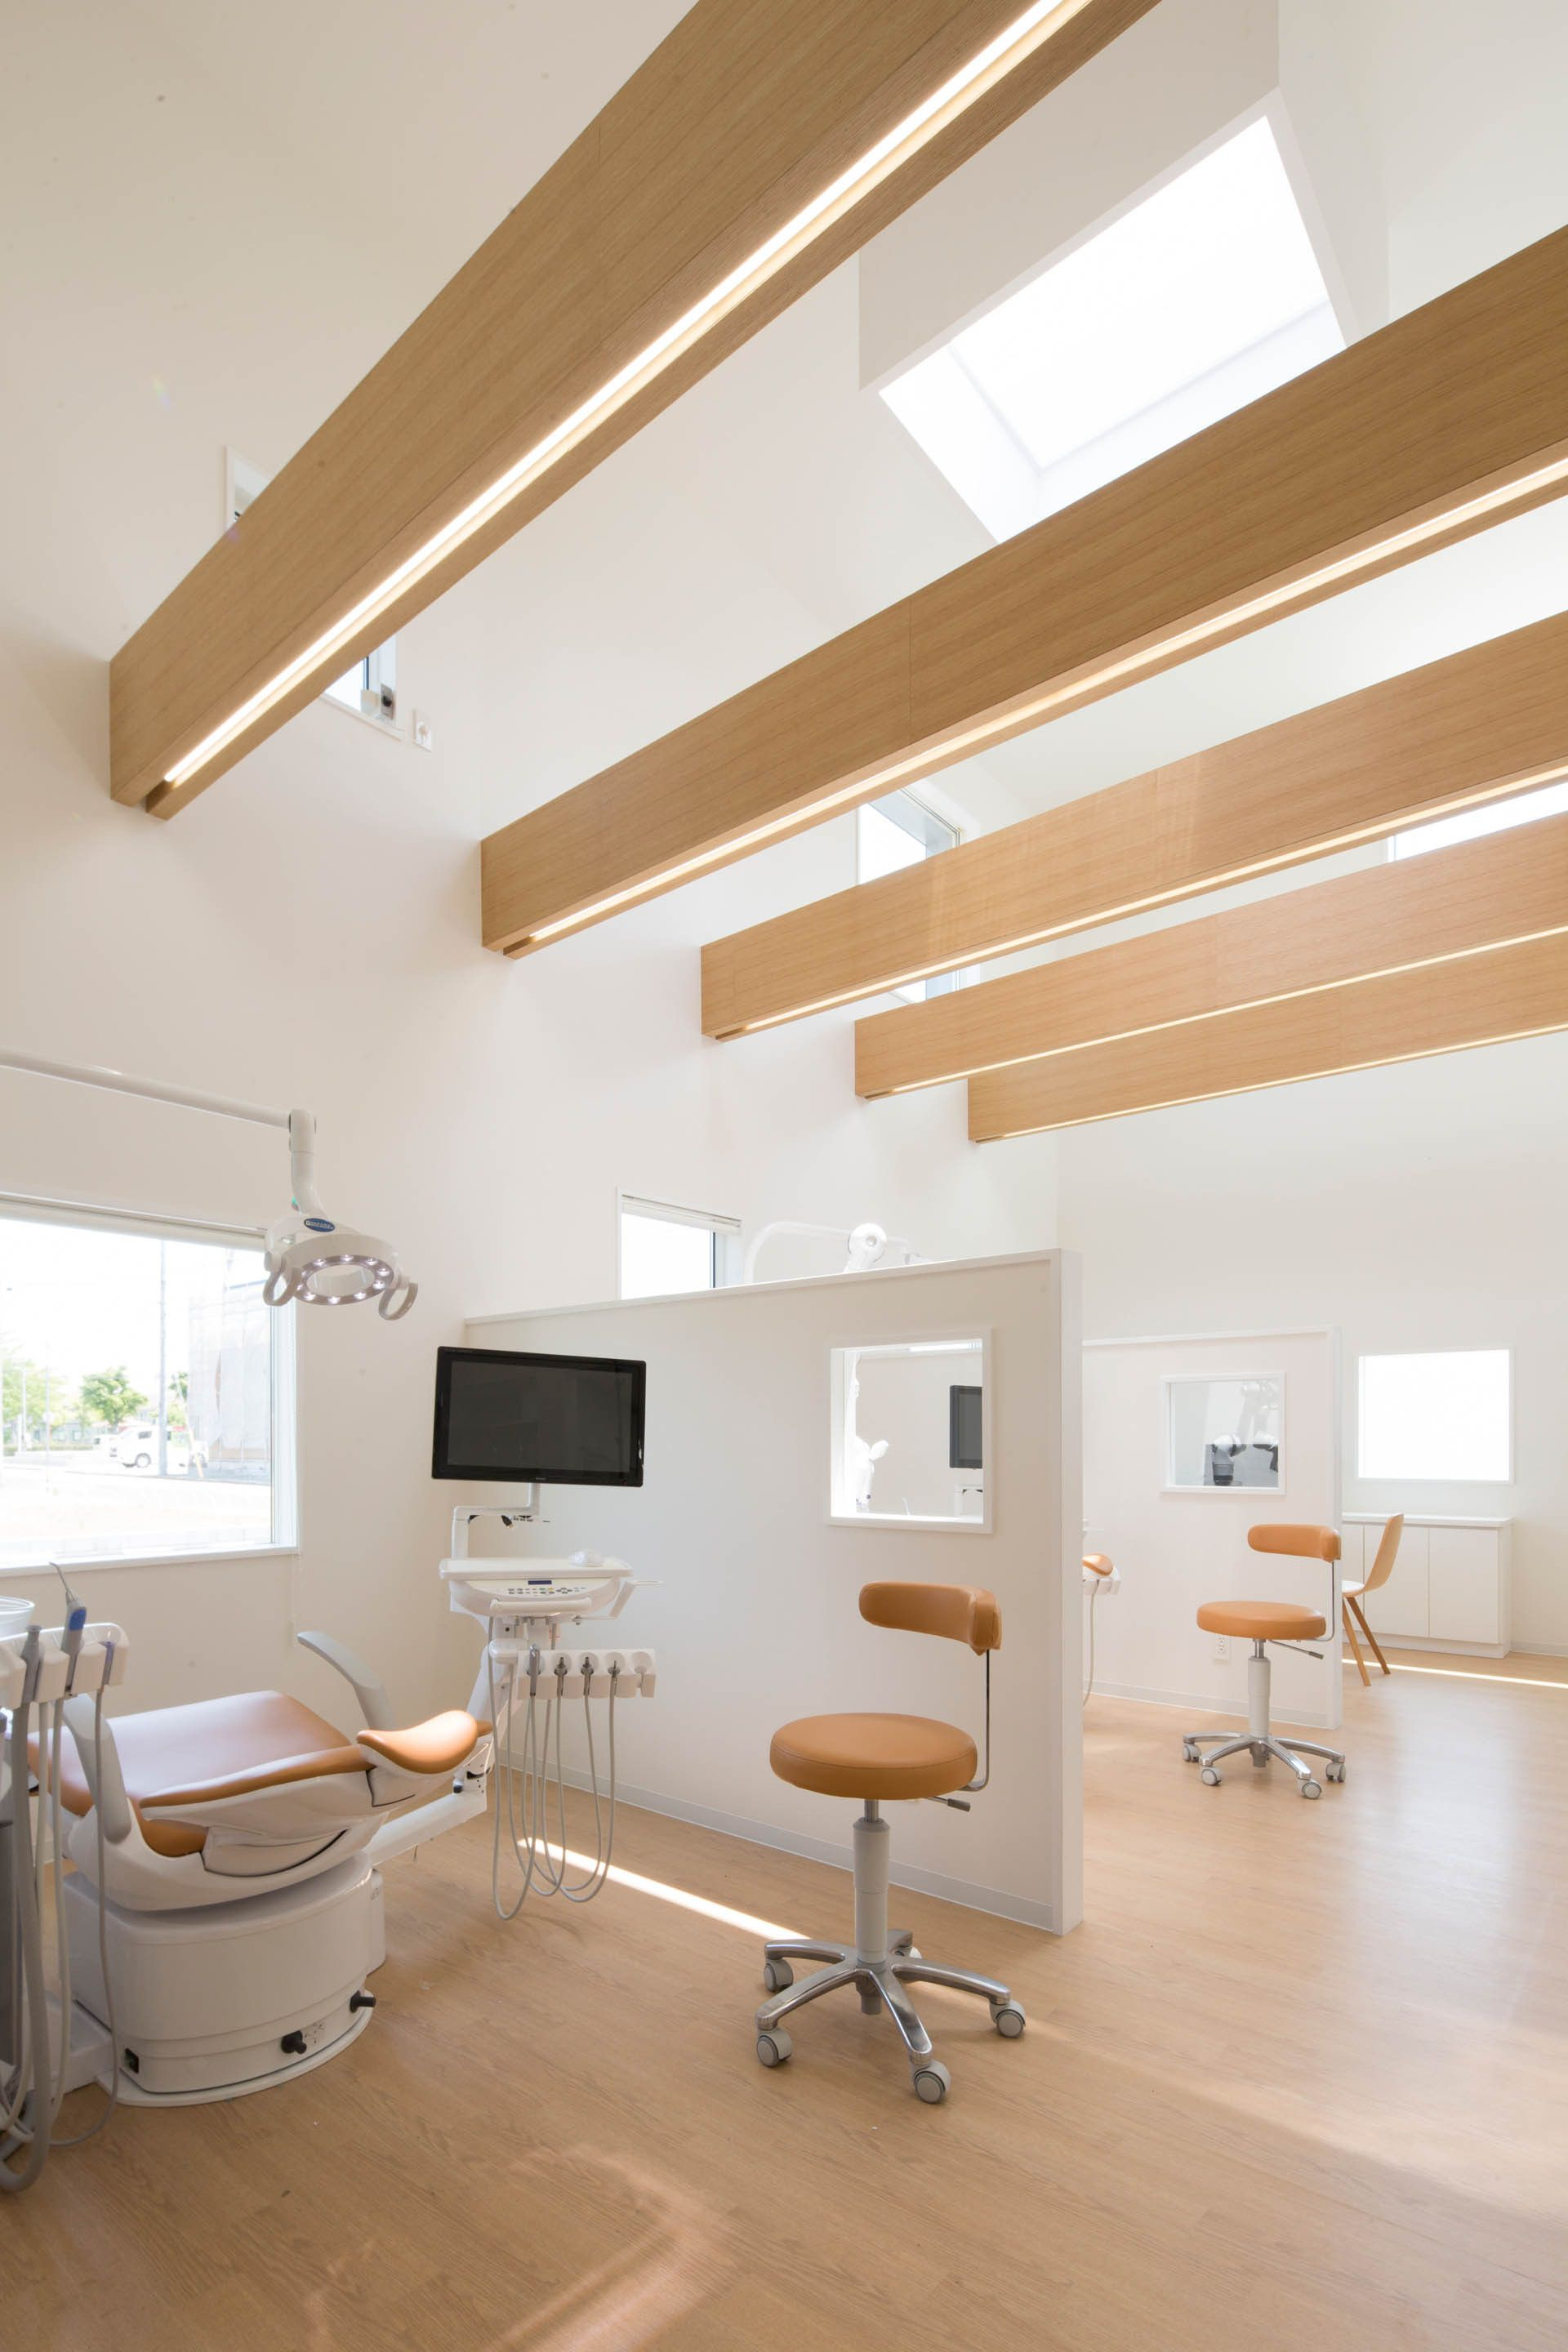 Image 7 Of 23 From Gallery Yokoi Dental Clinic Iks Design Msd Office Photograph By Keisuke Nakagami